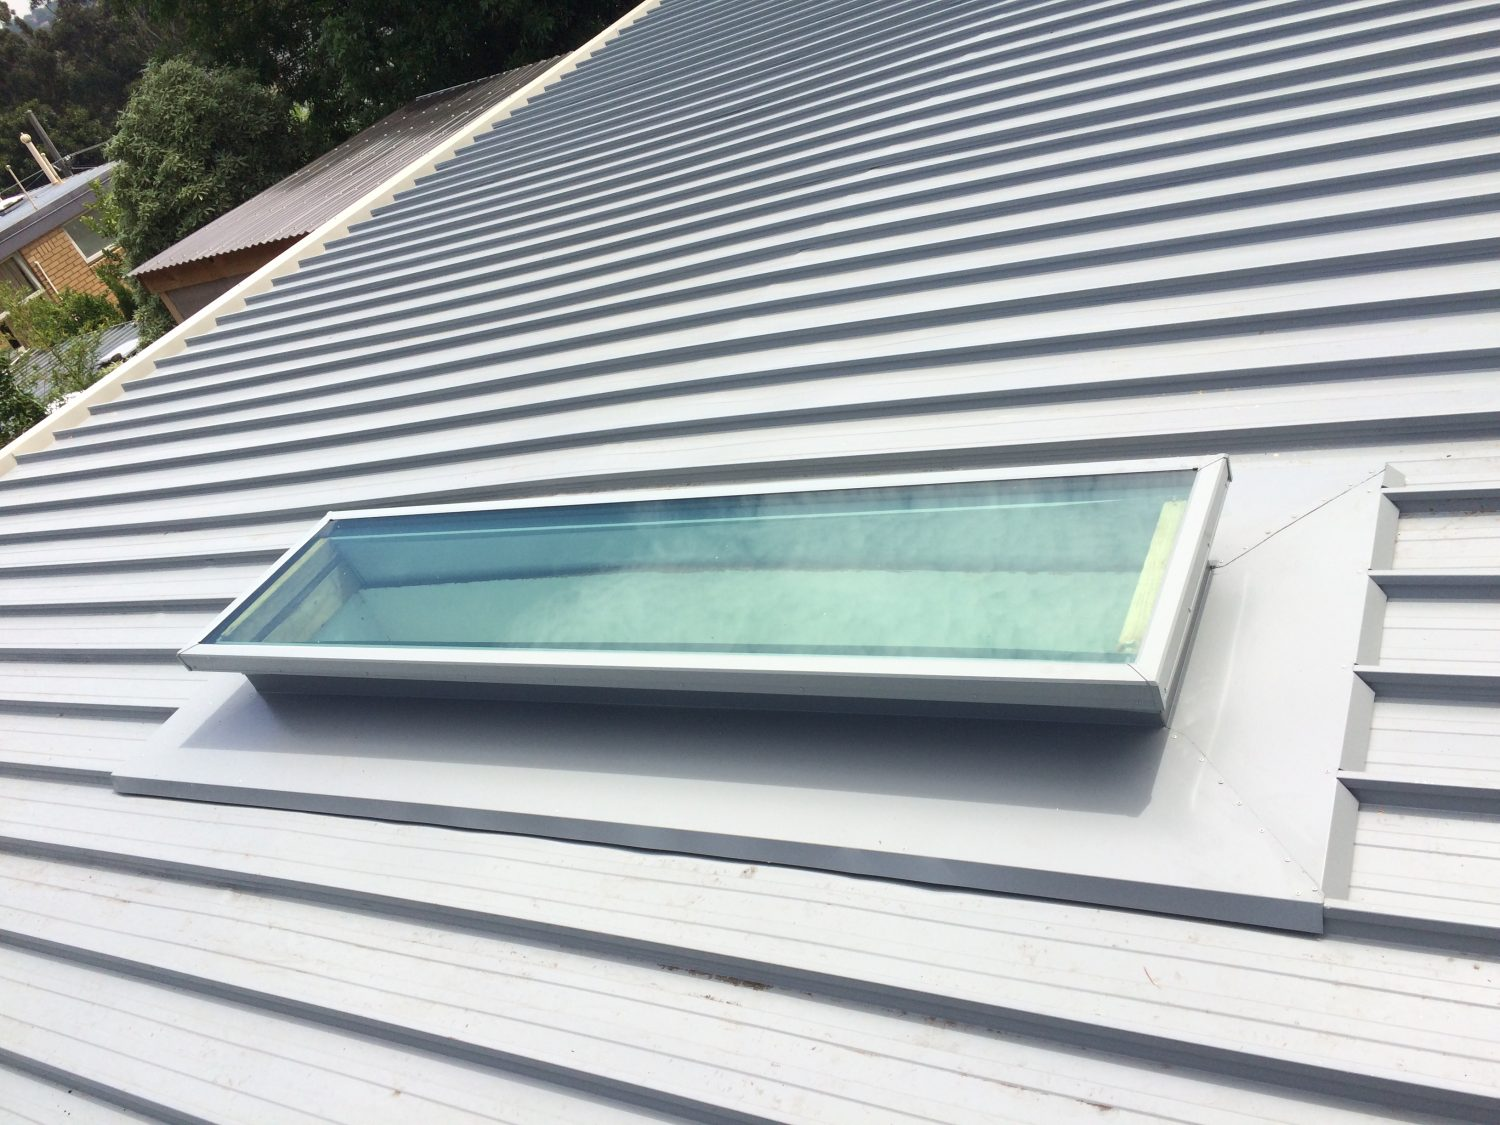 Skylight Installation on a flat metal roof replacement, Geelong